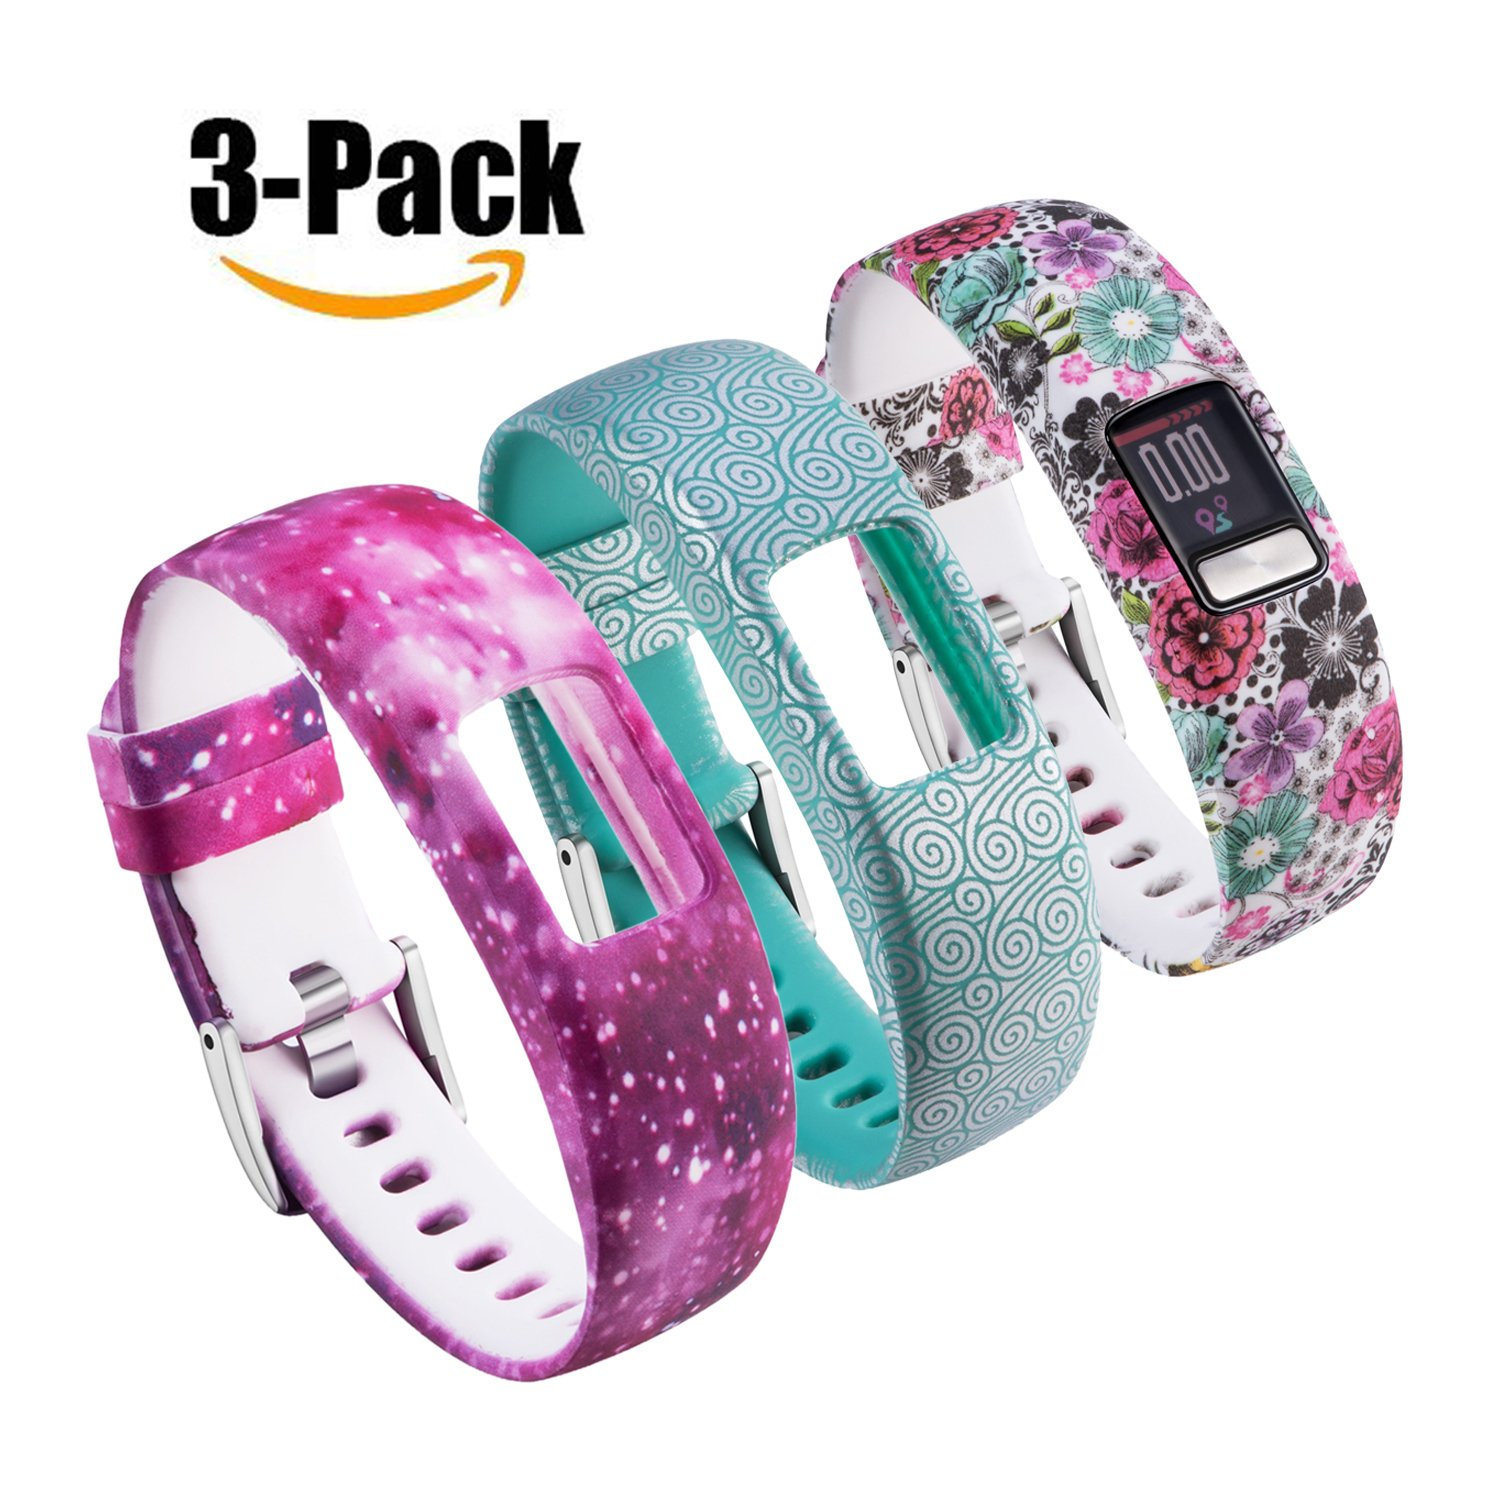 For Garmin Vivofit 4 Bands Printing Patterns Style Replacement Soft Silicone Adjustable Straps Wristband Accessories for Garmin Vivofit4 Tracker Band Large & Small [3 Pack] (Large, Multicolor-D)